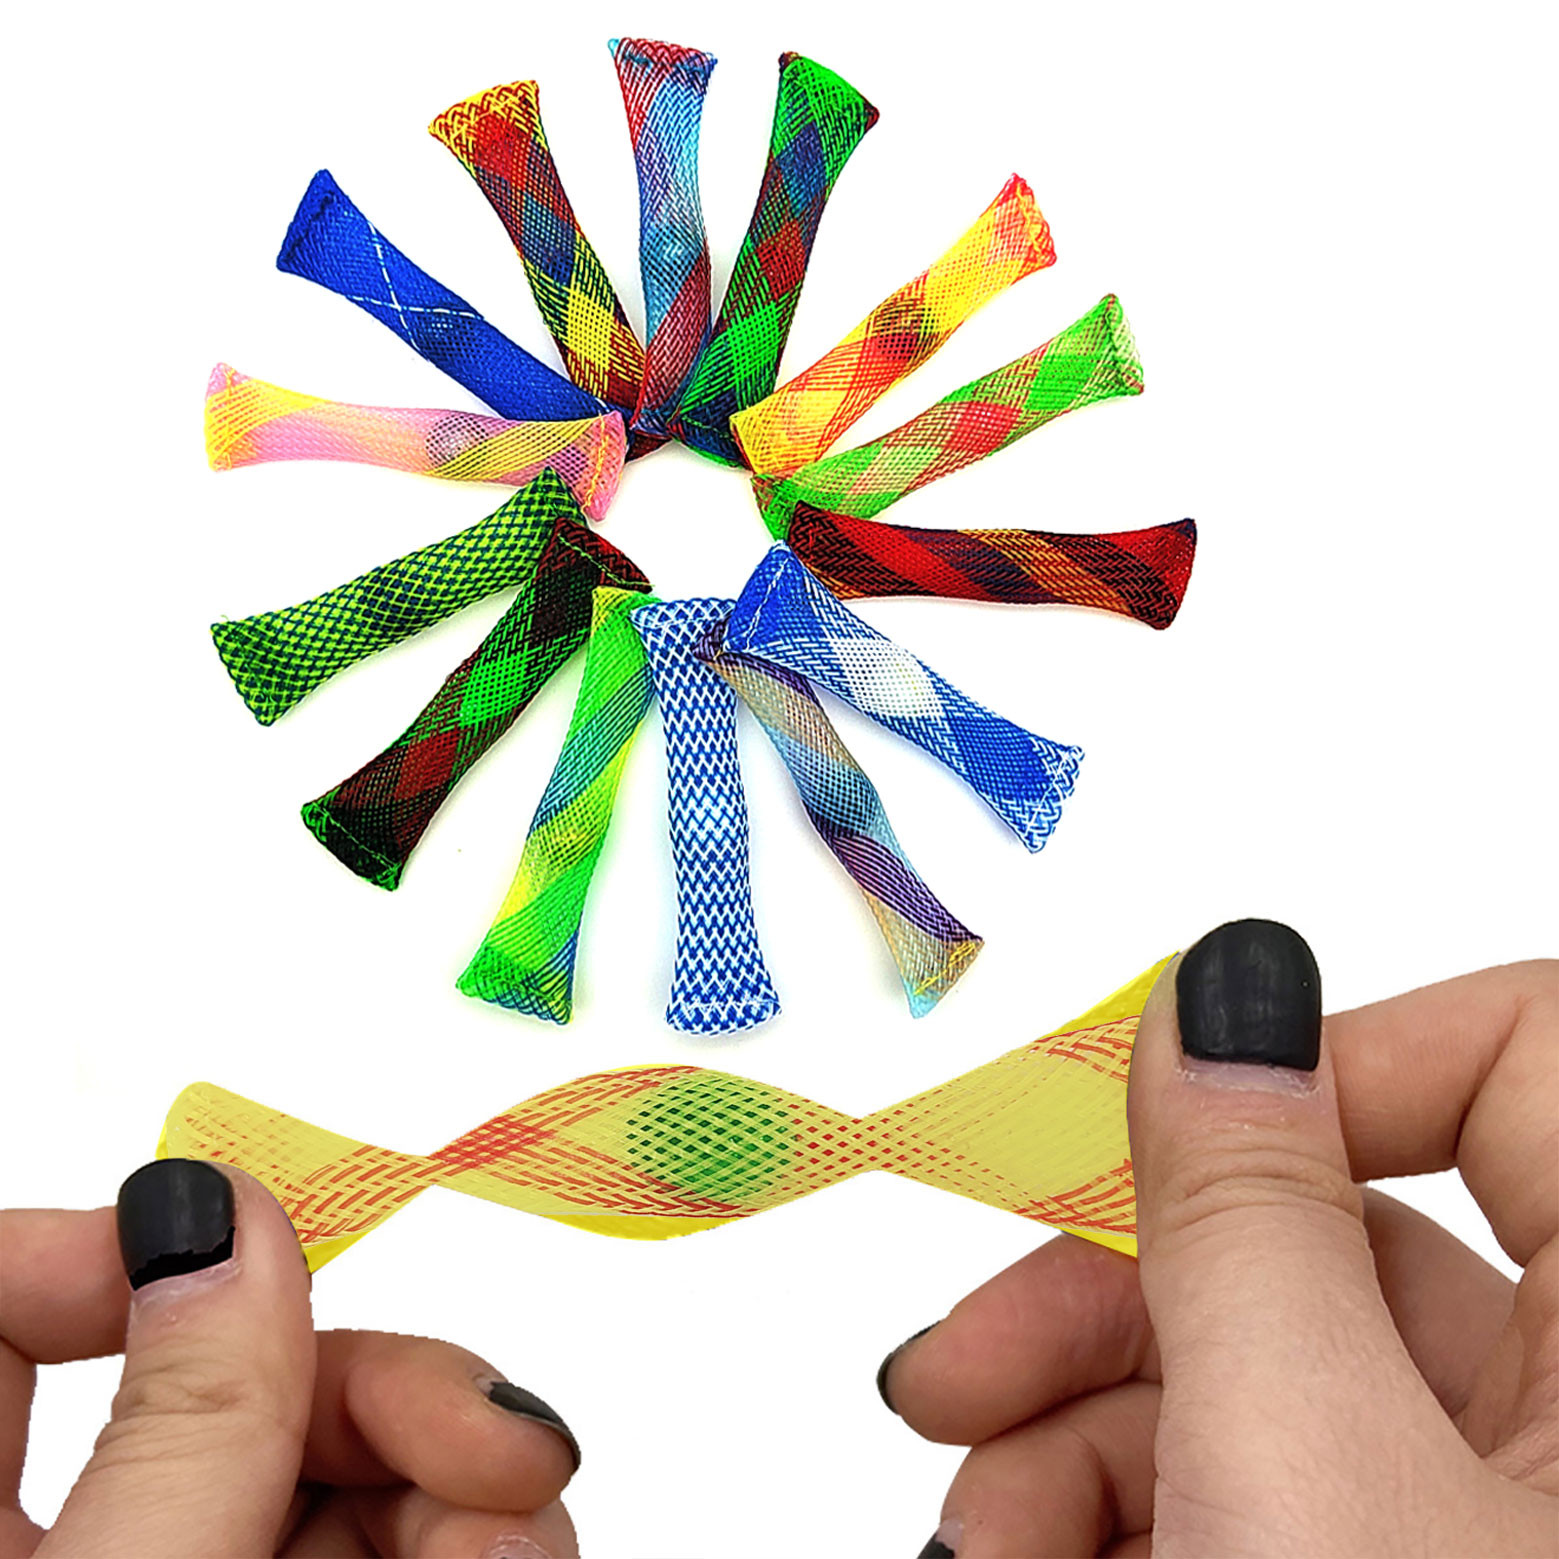 Fidgets Toy Net-Tube Glass-Ball Marble Mesh Decompression Hand-Sensory Anti-Stress Relief